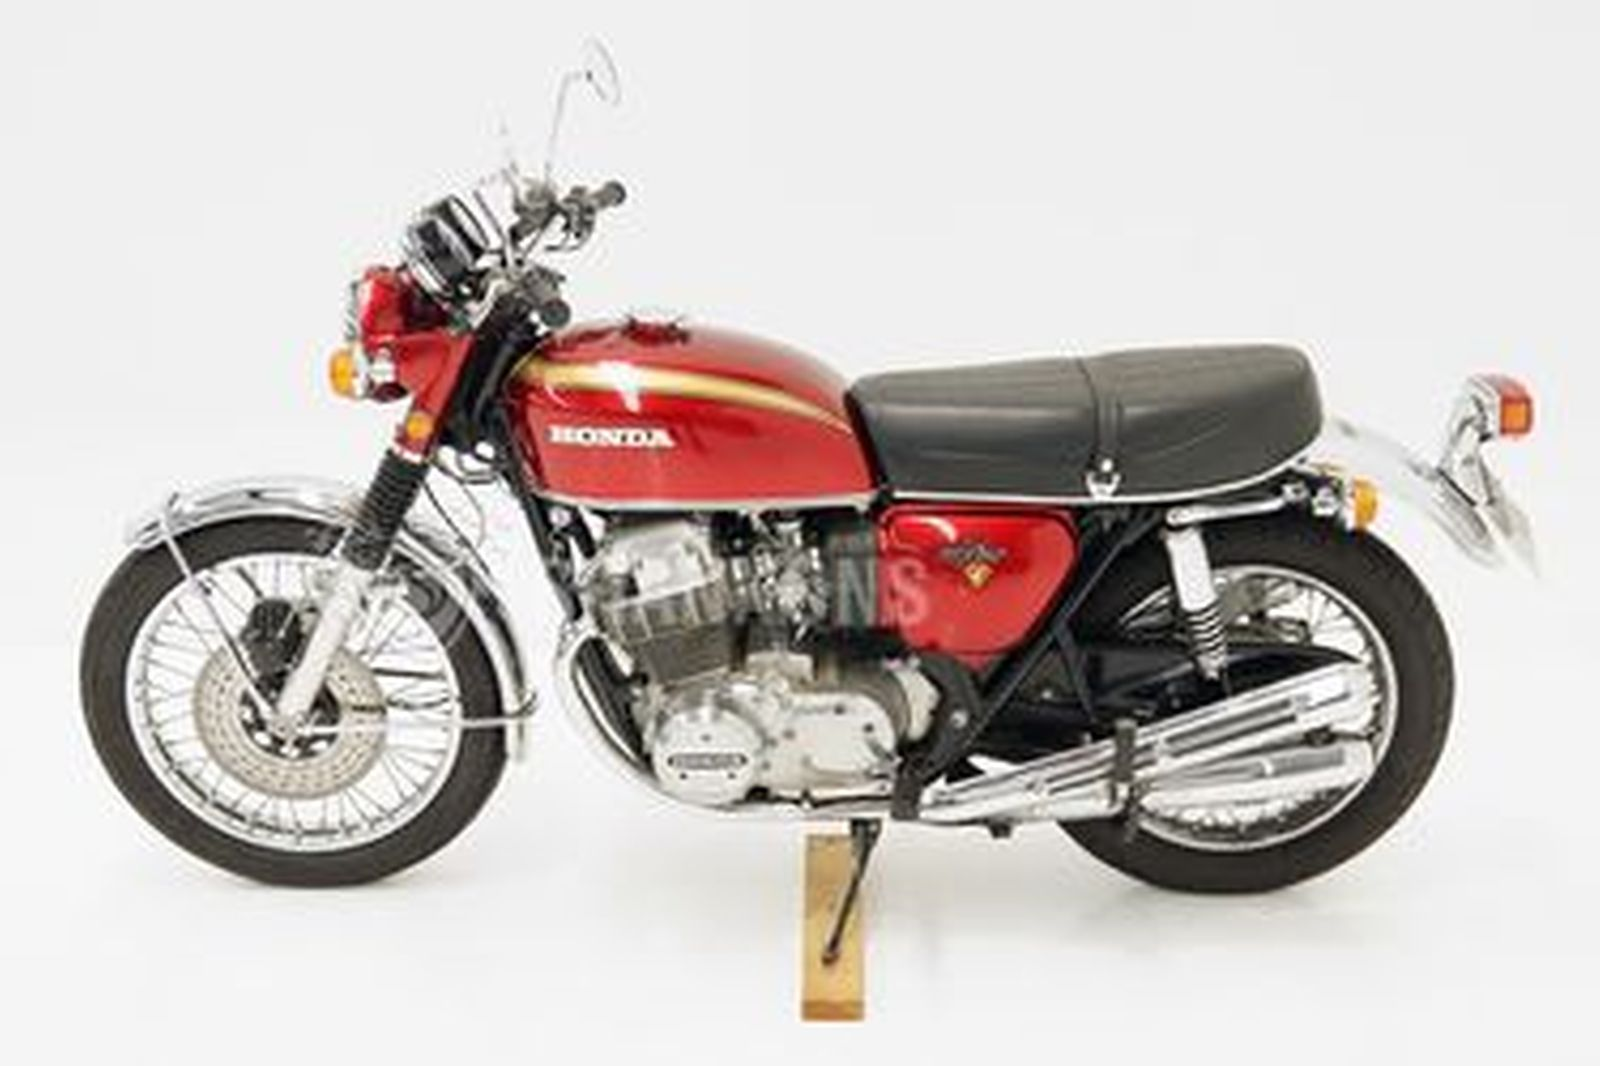 Sold Honda Cb750 Four K1 Motorcycle Auctions Lot 58 Shannons